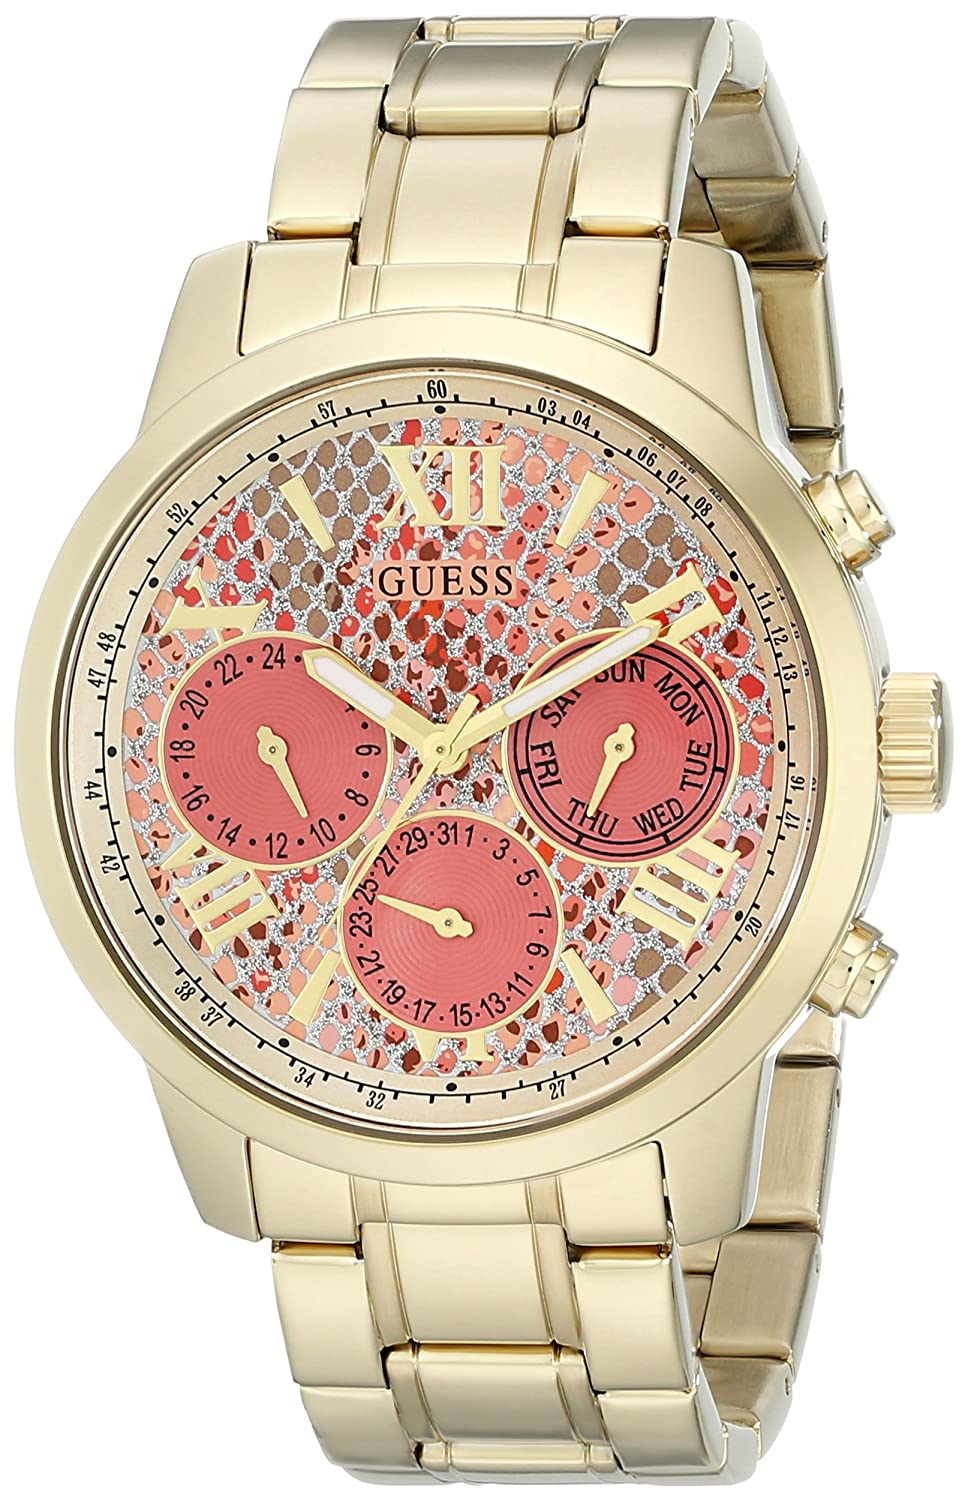 GUESS Women s U0330L11 Stainless Steel Gold-Tone Watch with Coral Python-Print Multi-Function Dial, Day, Date 24 Hour Int l Time